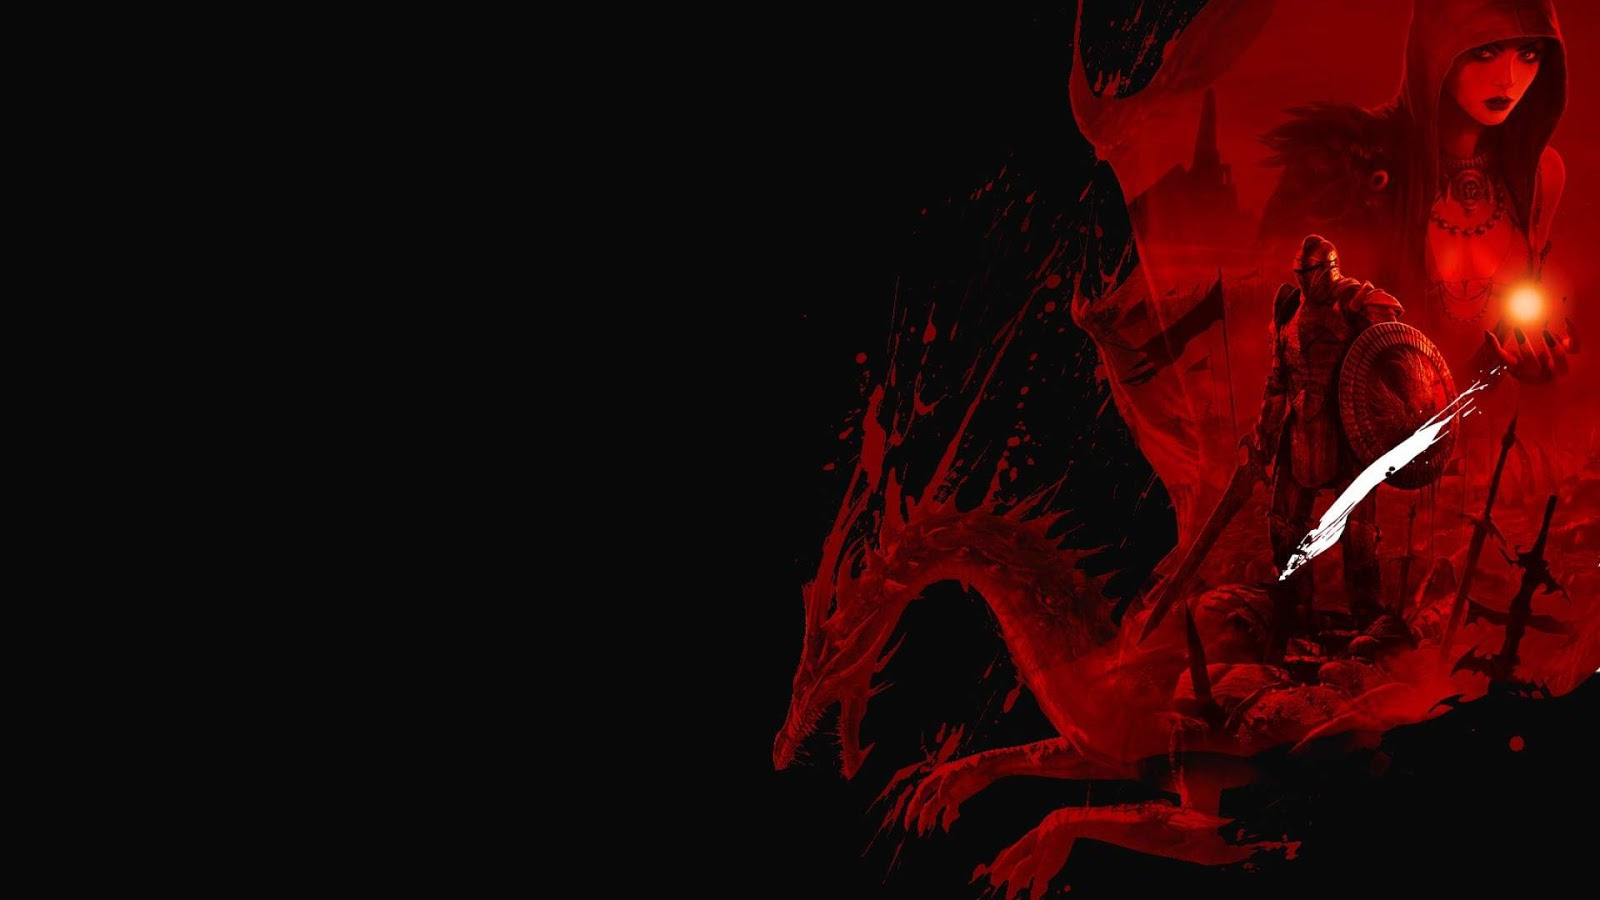 Black and White Wallpapers Dragon Age Blood Red Dragon Black Red 1600x900